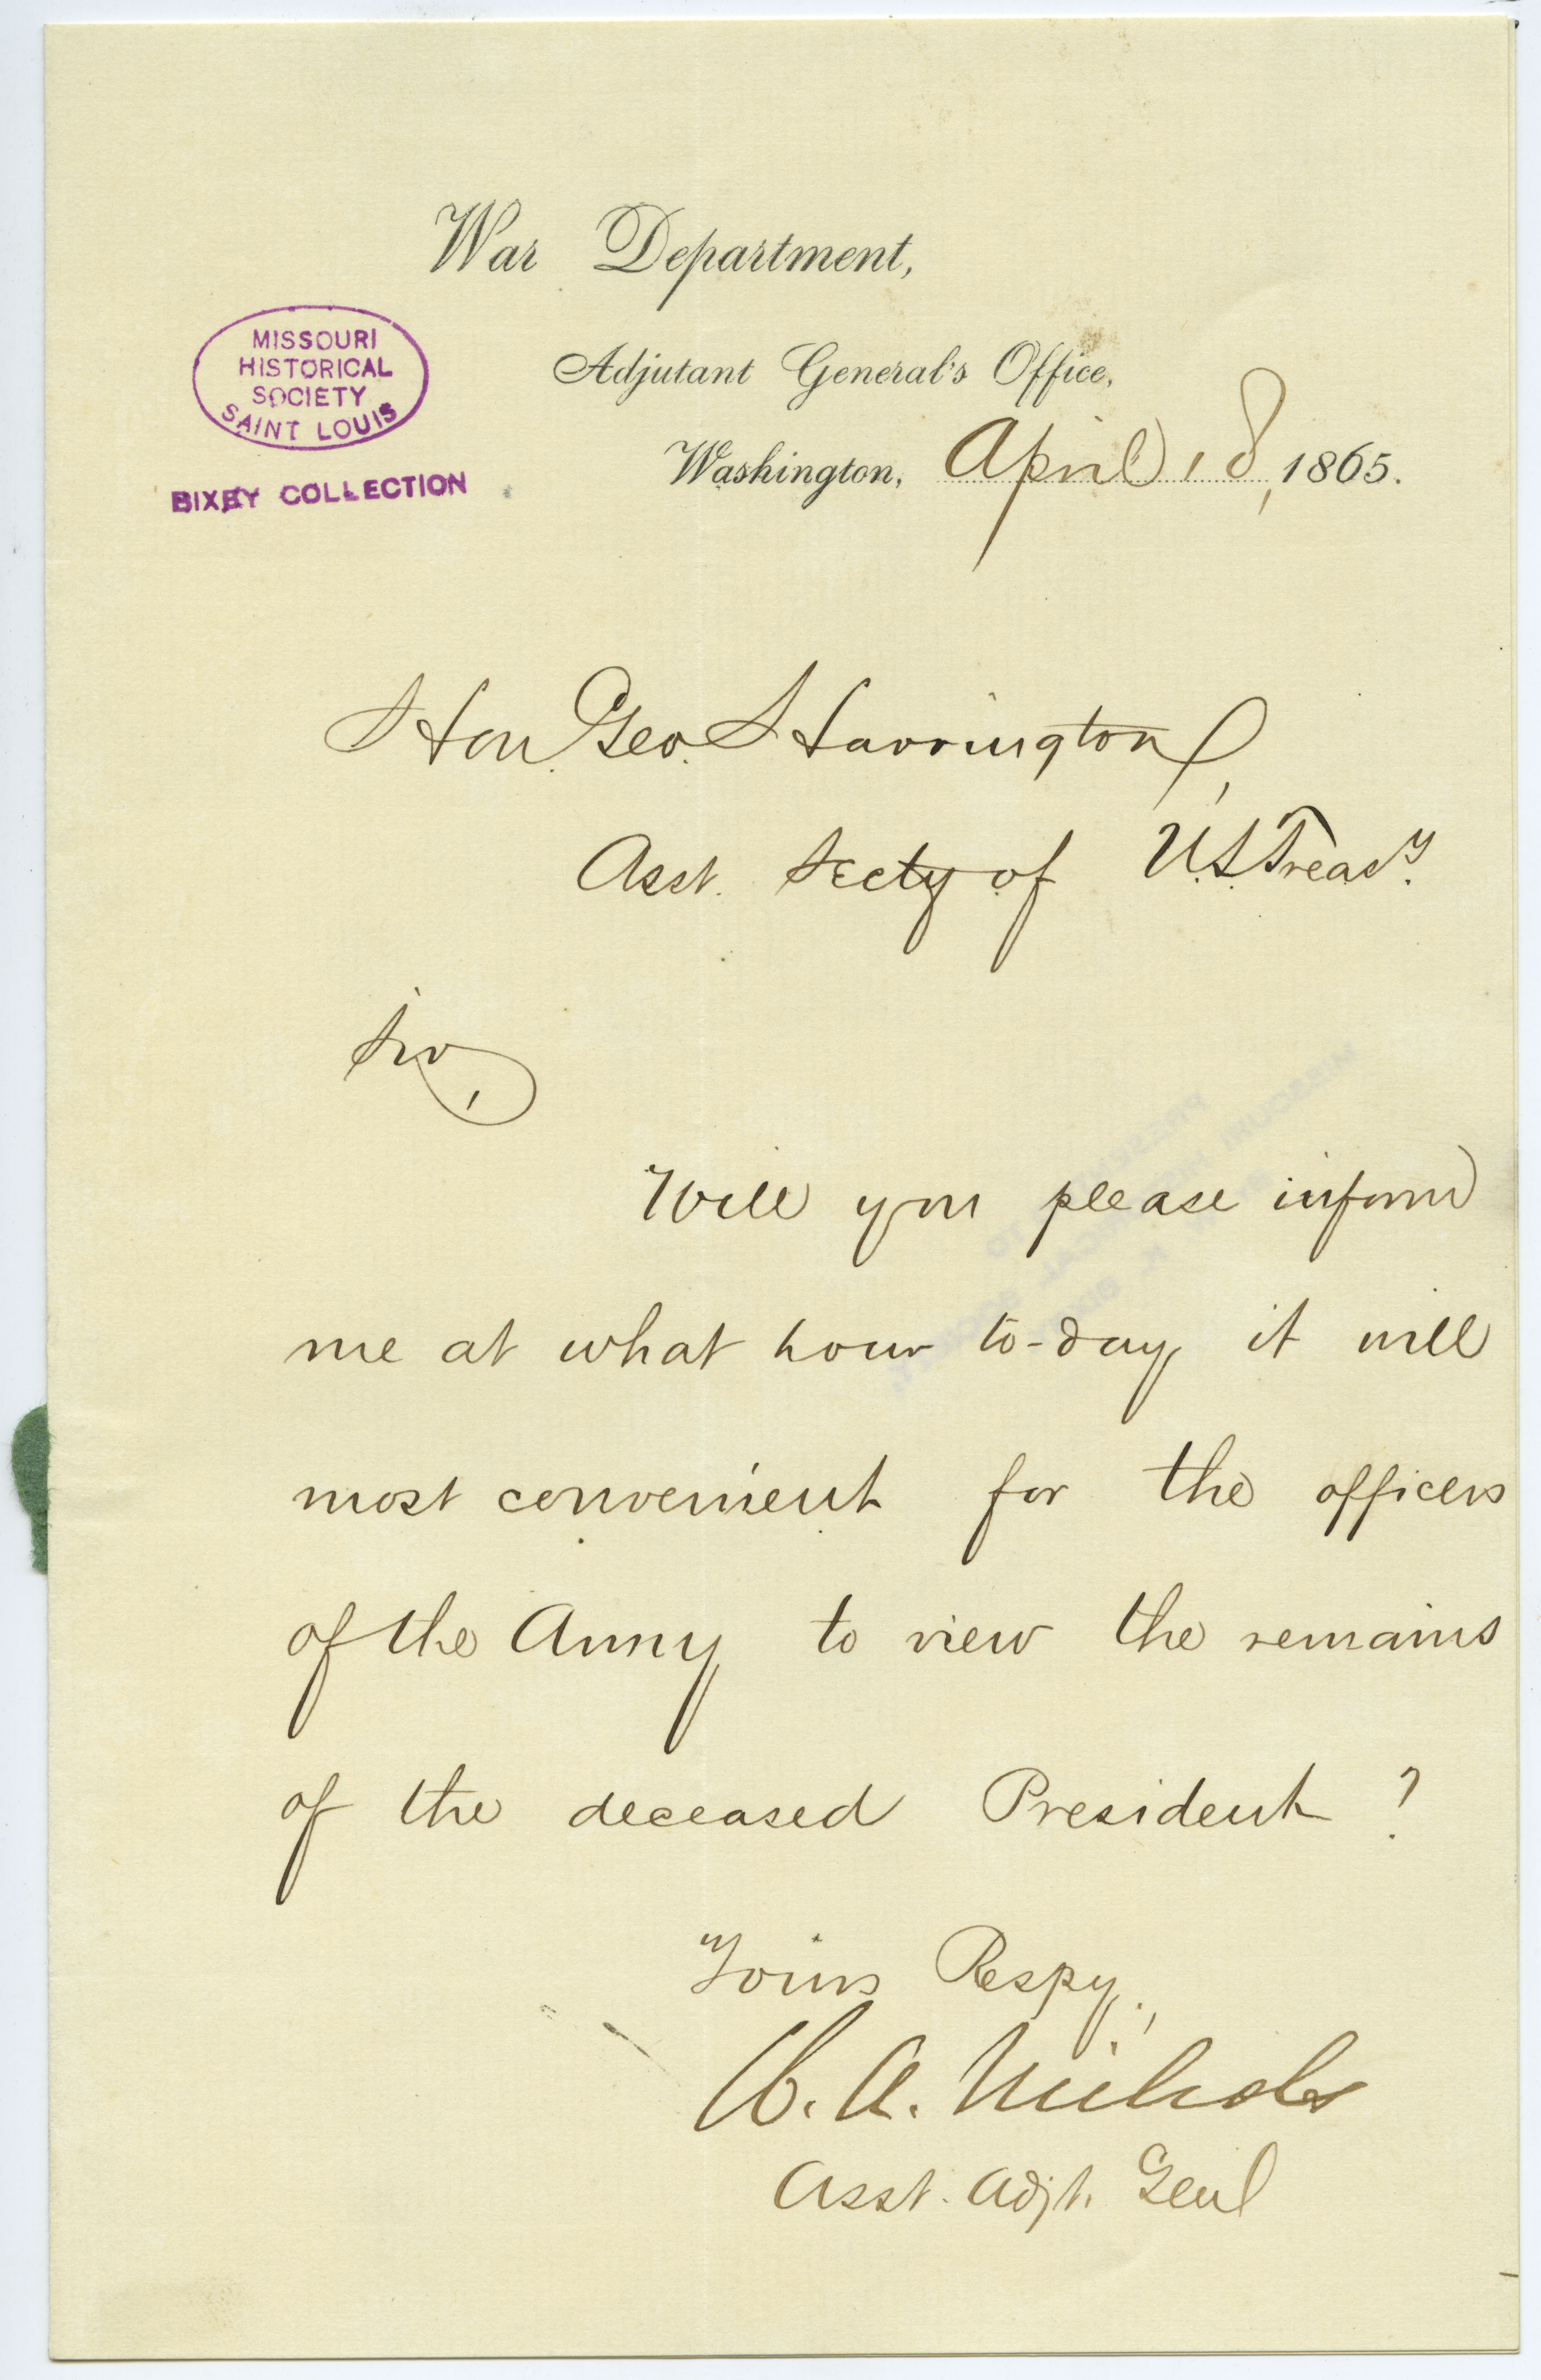 Letter signed W.A. Nichols, Asst. Adj. Genl., War Department, Adjutant General's Office, Washington, to Hon. Geo. Harrington [George Harrington], Asst. Secty. of U.S. Treasy., April 18, 1865